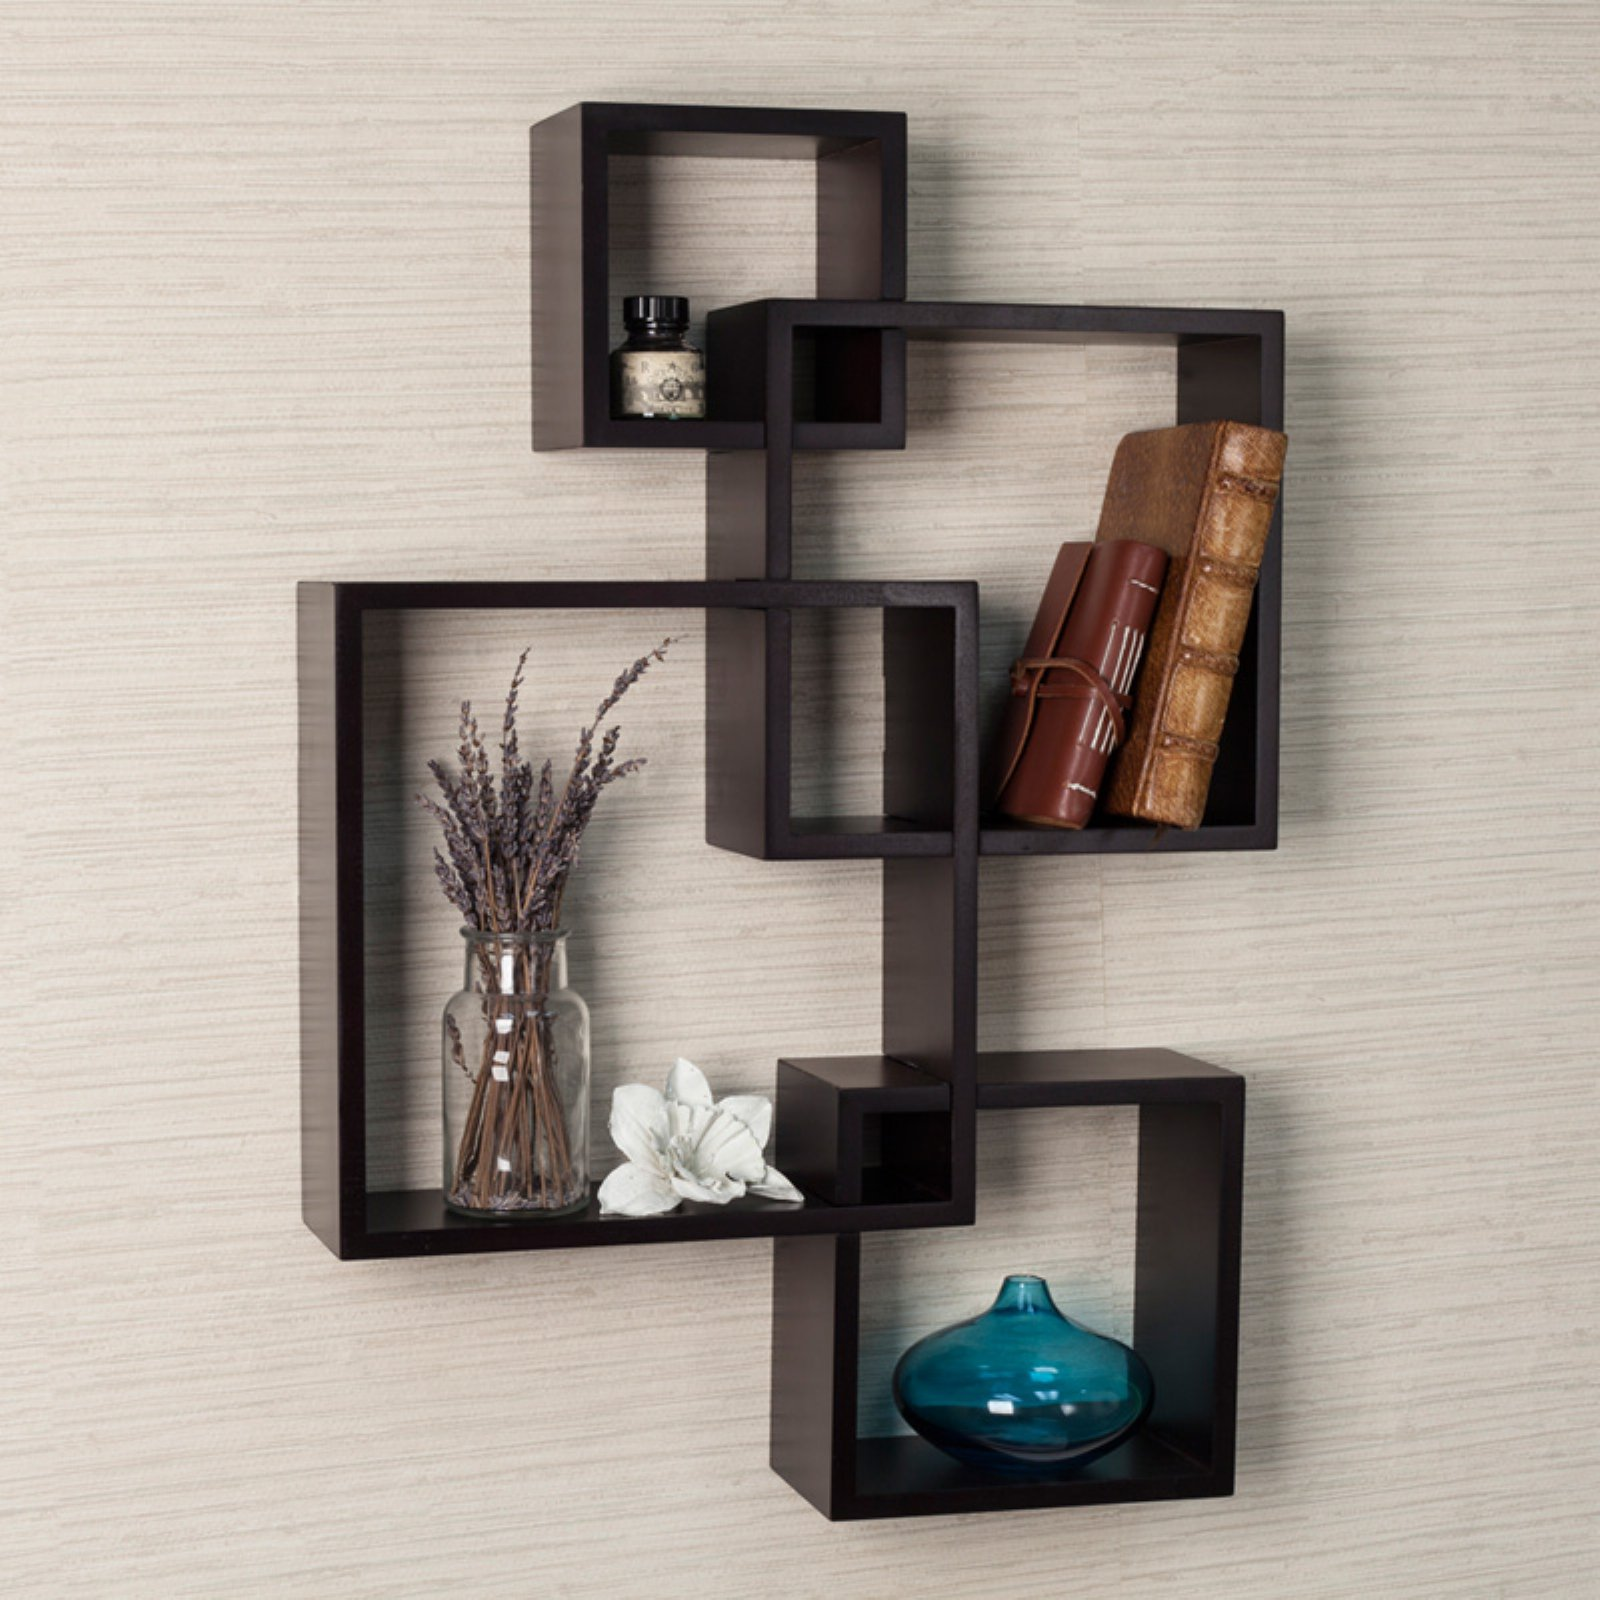 Danya B Espresso Intersecting Cube Shelves